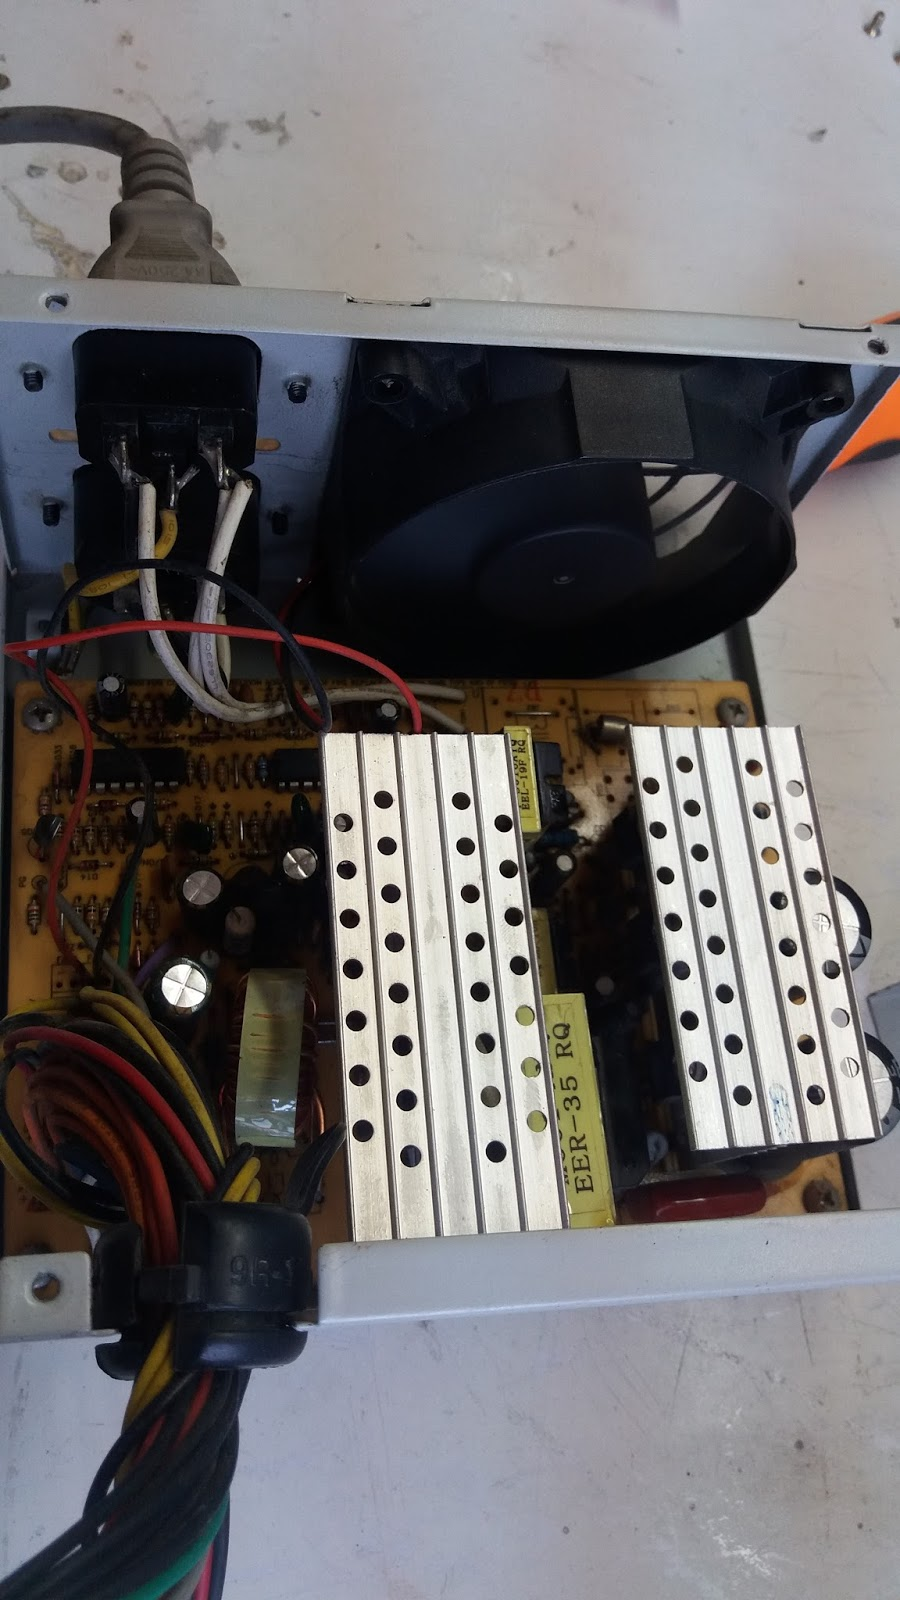 How To Test Computer Power Supply Unit Using Multi Tester Wiring Board Psu With Main Circuit And Exhaust Fan The Cable Connected At Back